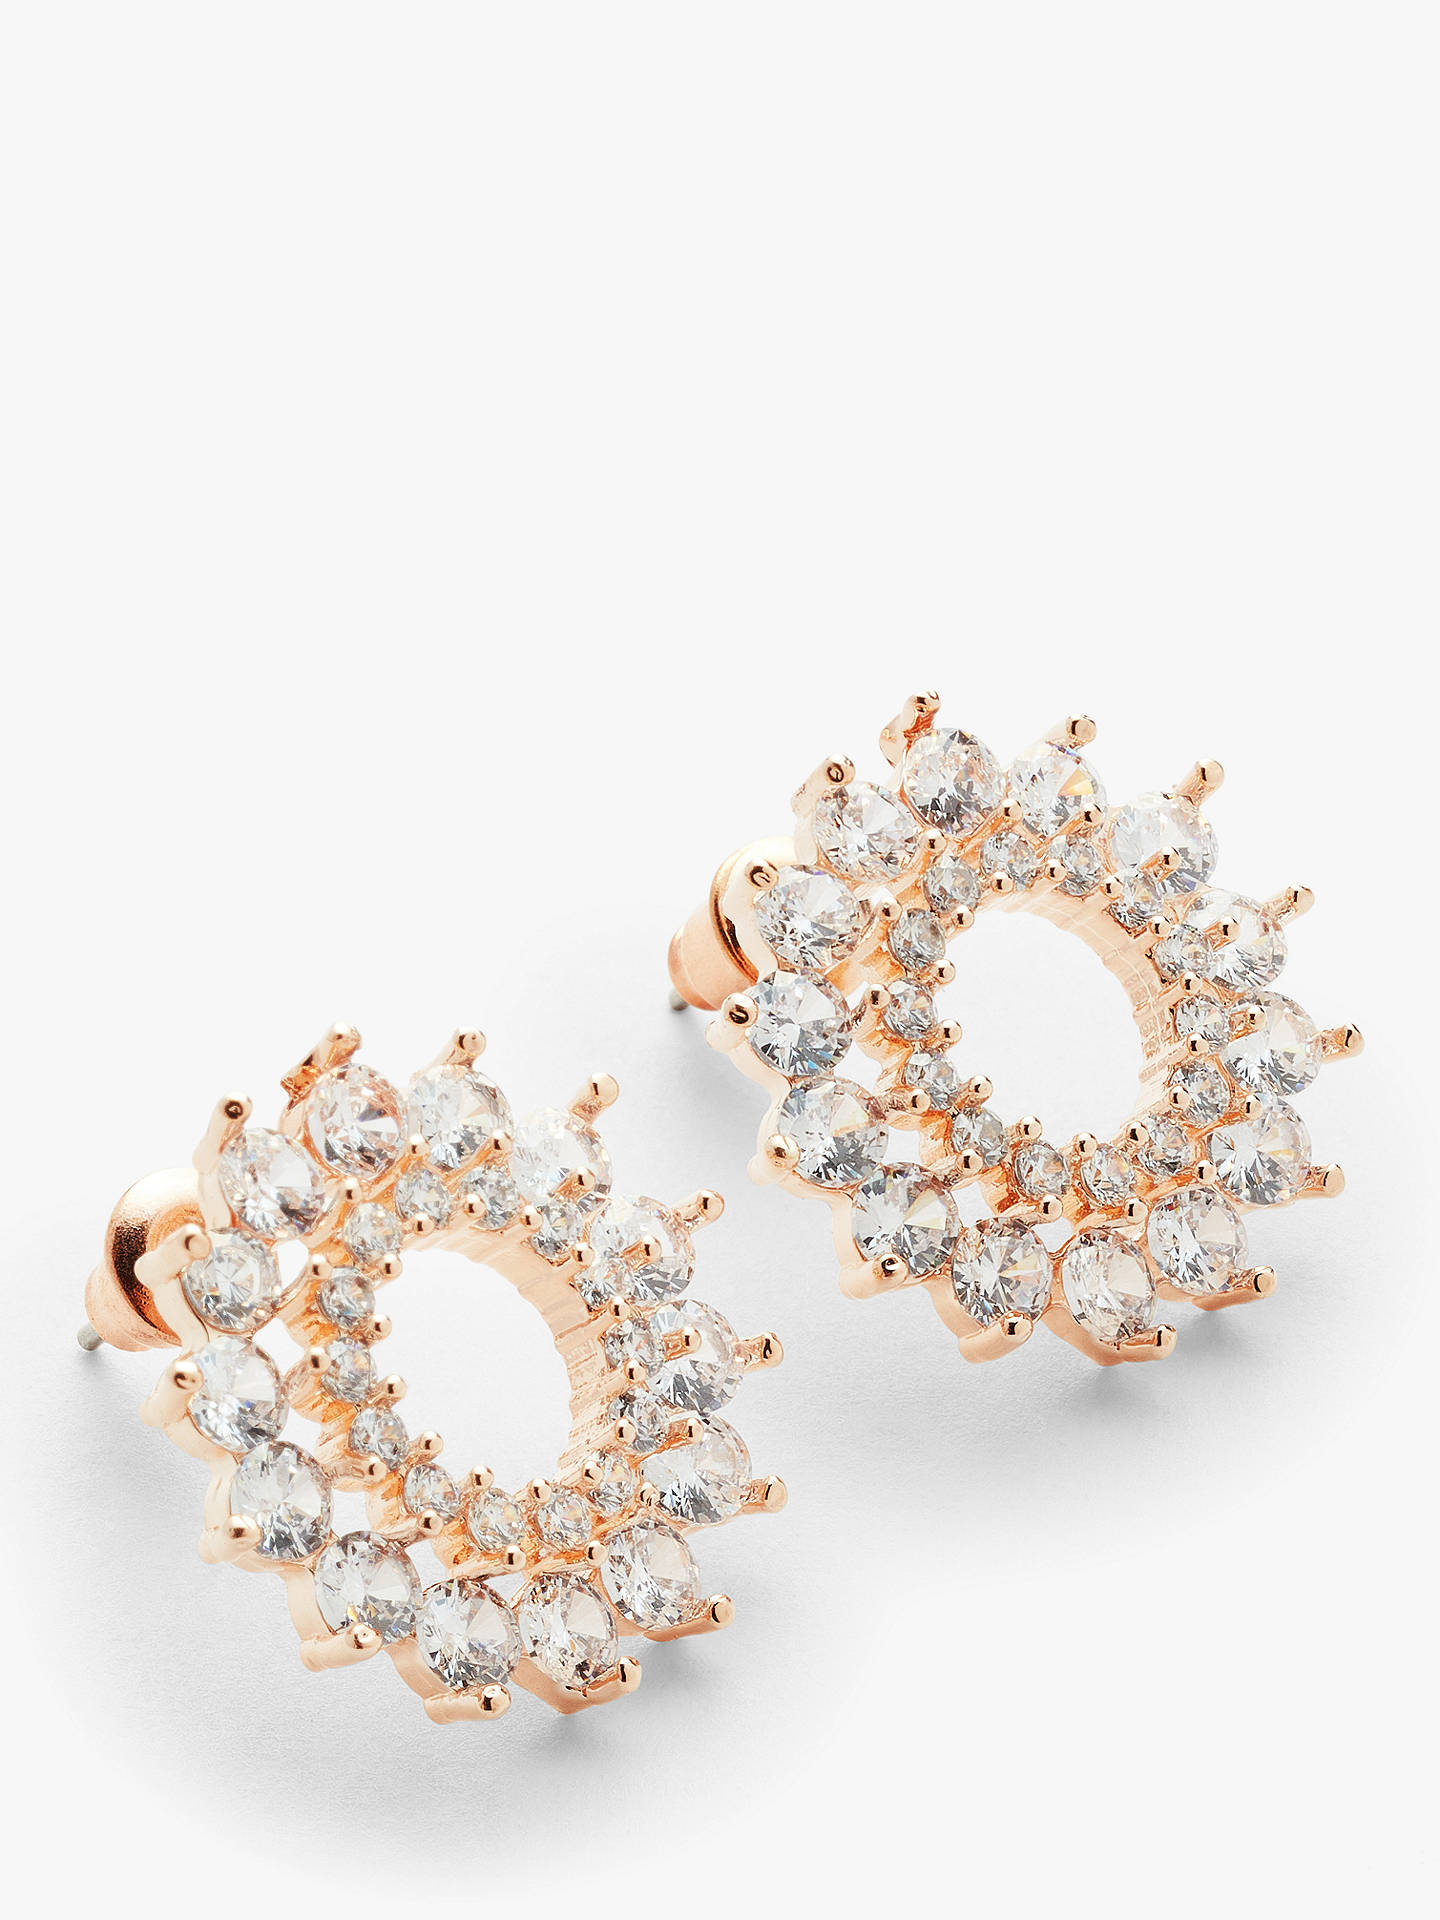 866bd6cc5940 ... Buy John Lewis & Partners Cubic Zirconia Large Open Stud Earrings, Rose  Gold Online at